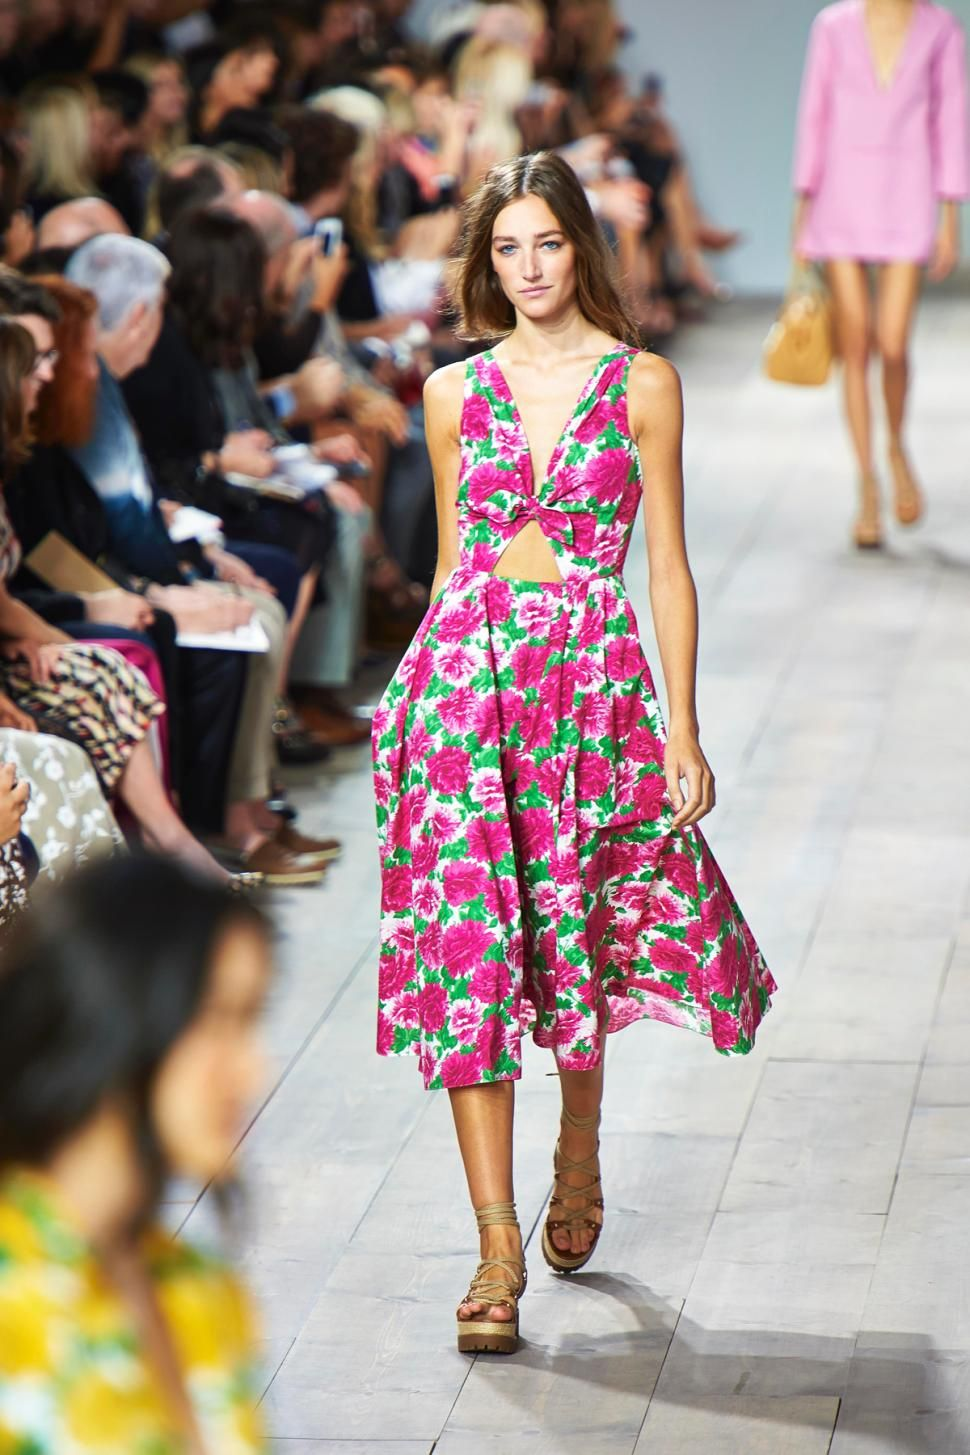 Kors' collection glorified the floral print trend